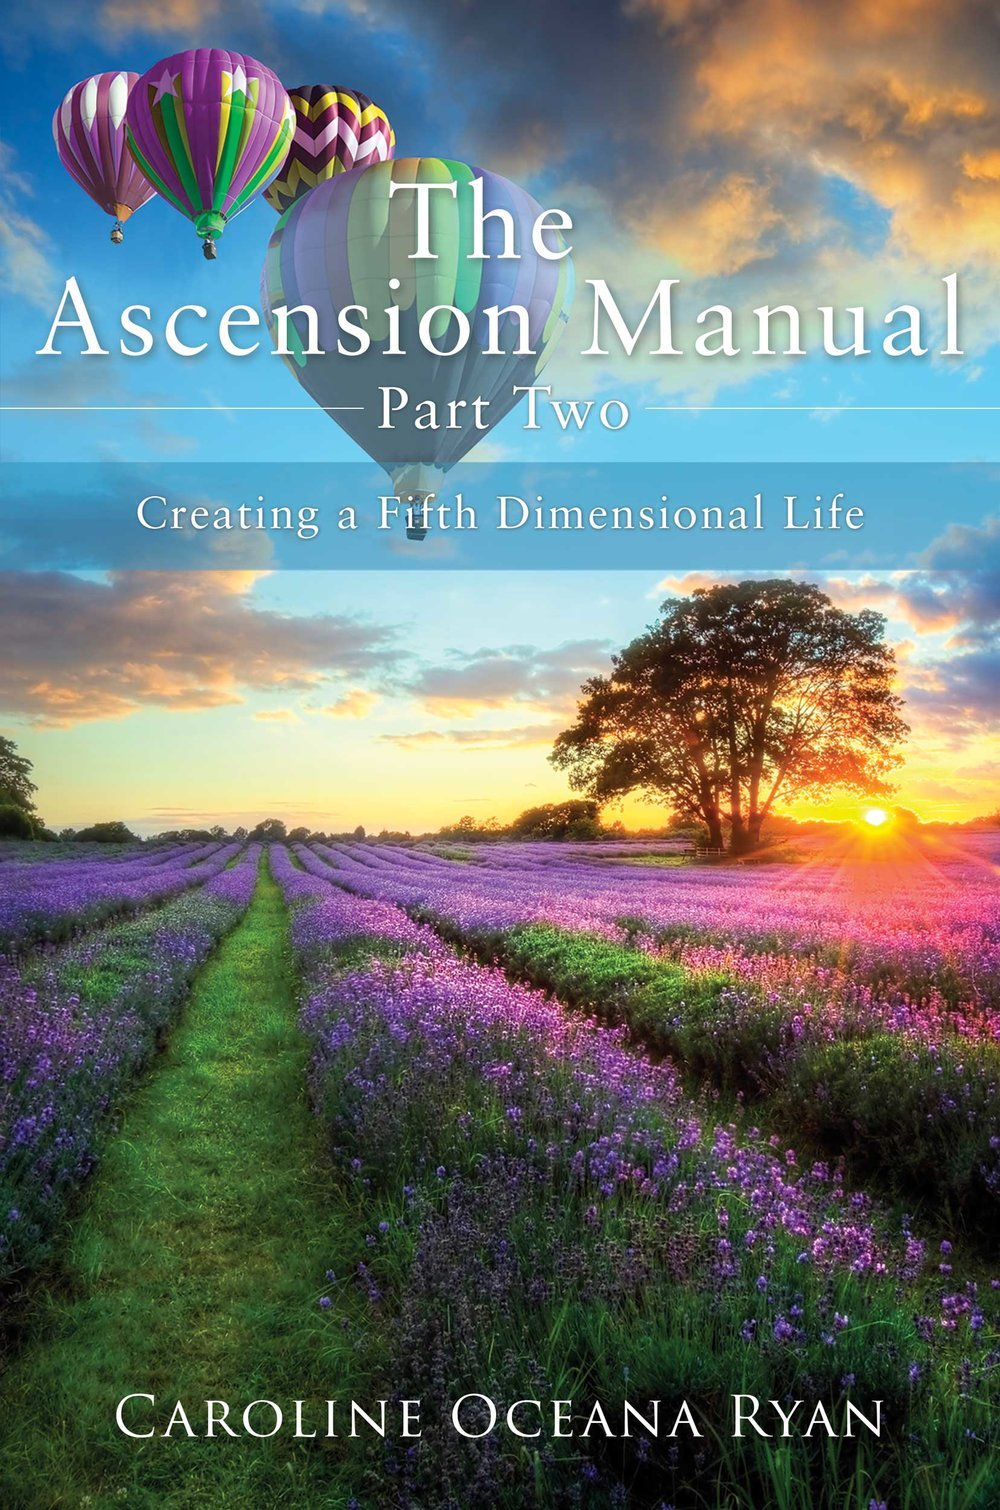 AscensionManual_2_Final.jpg